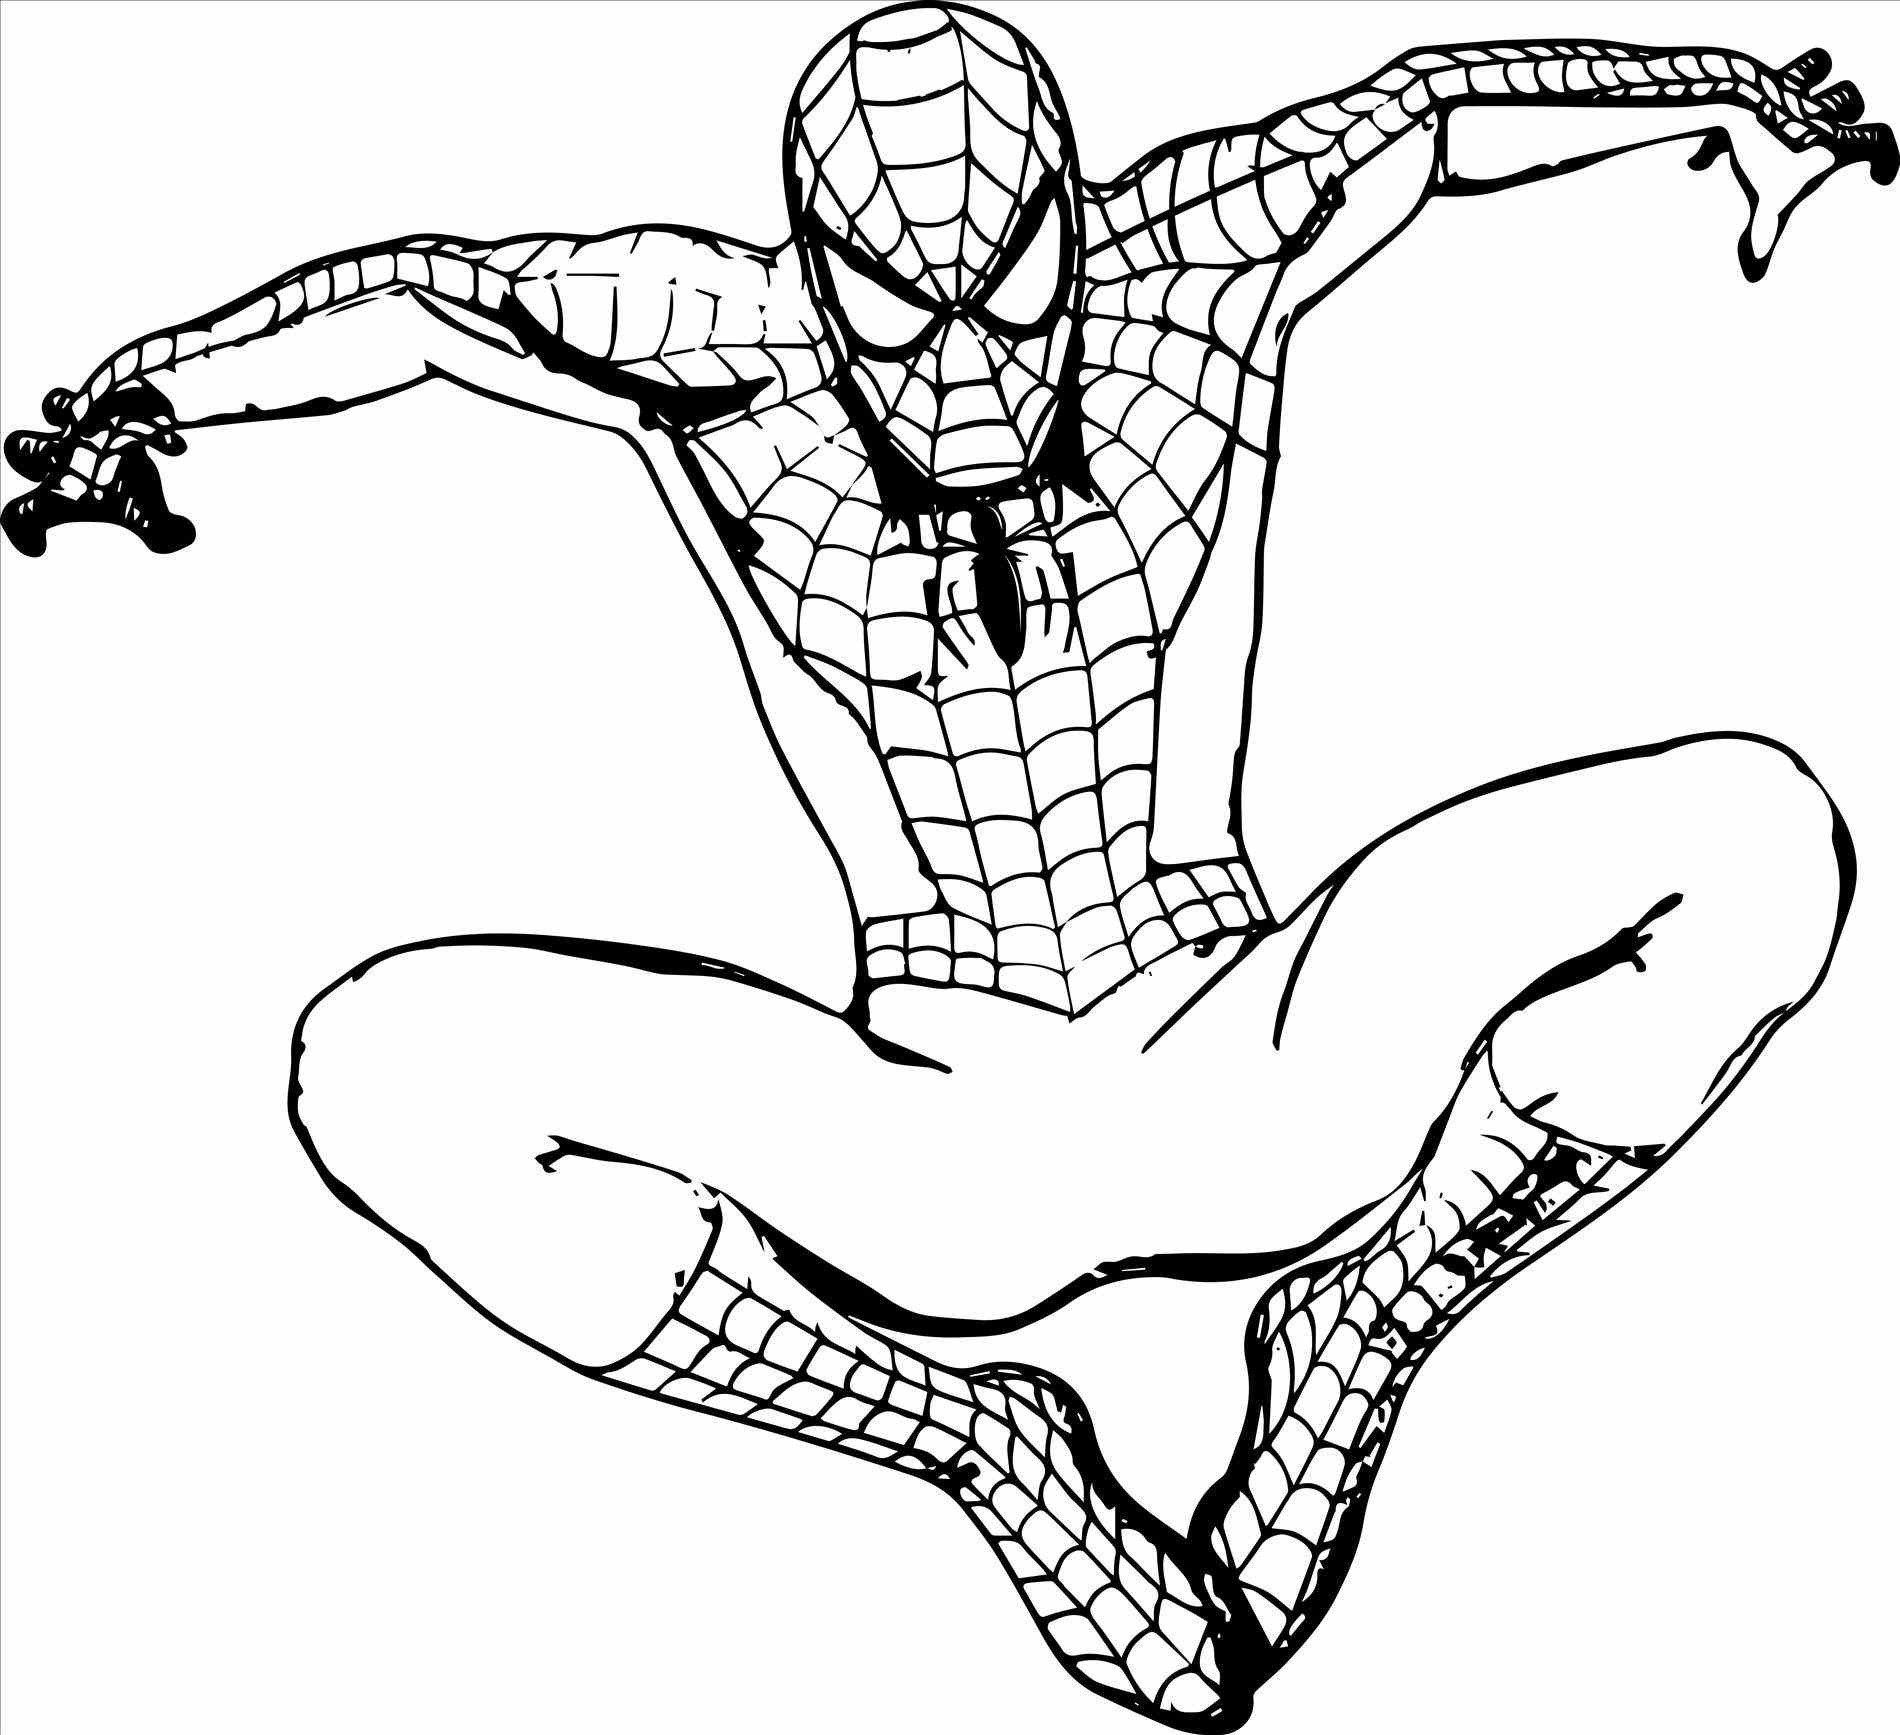 Coloring Pages Of Dragons Luxury Unique Ironman Coloring Pages Fansites Superhero Coloring Pages Superhero Coloring Spiderman Coloring